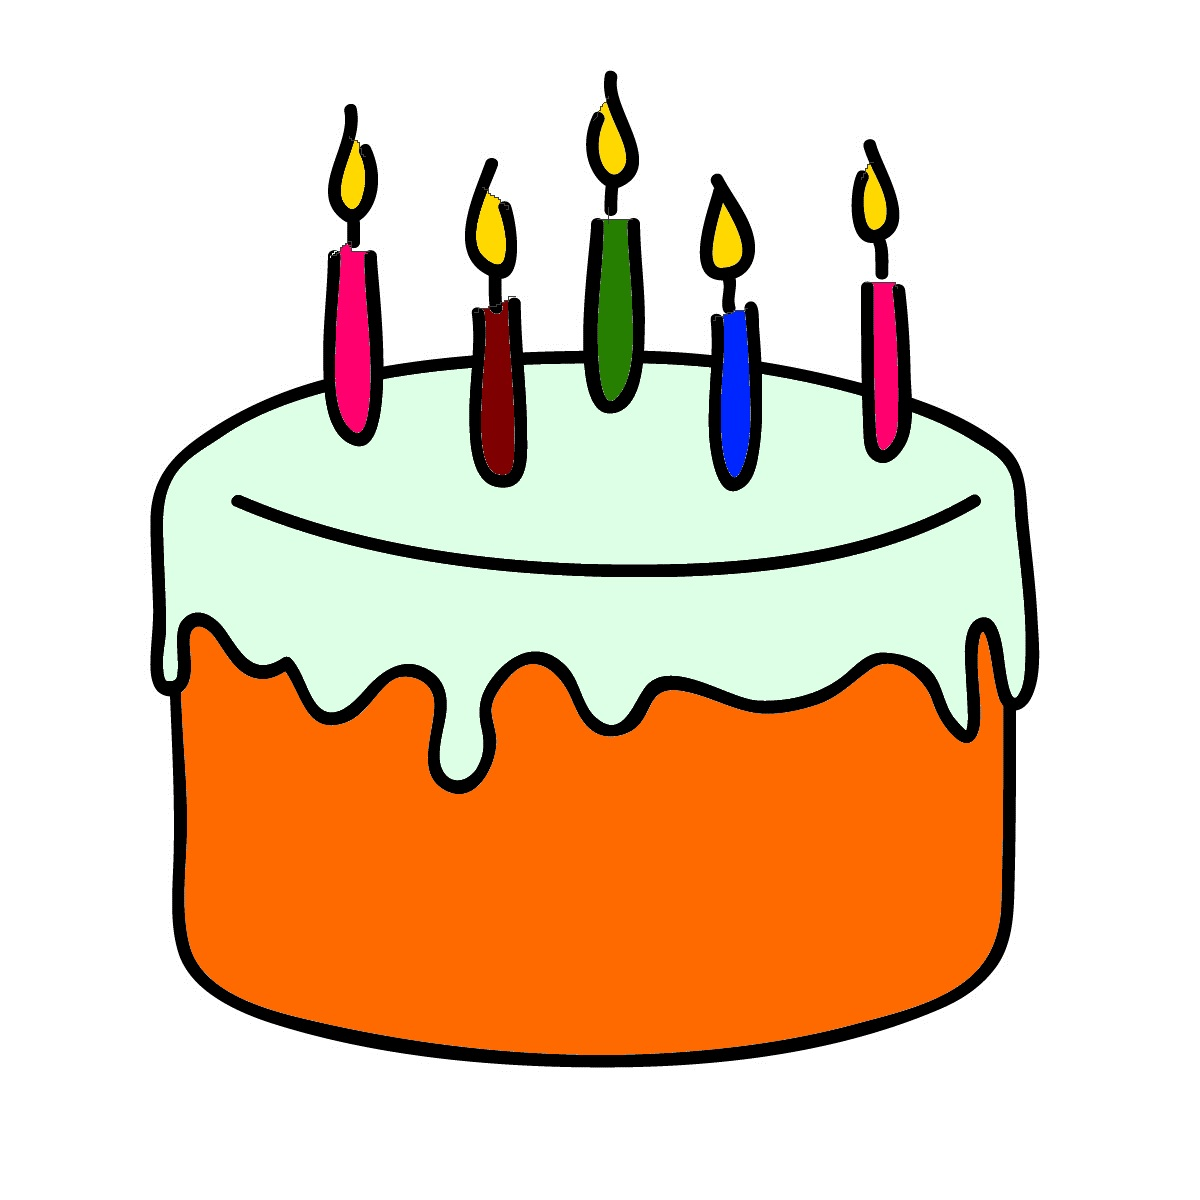 Birthday cake clipart. Free photo pie candles